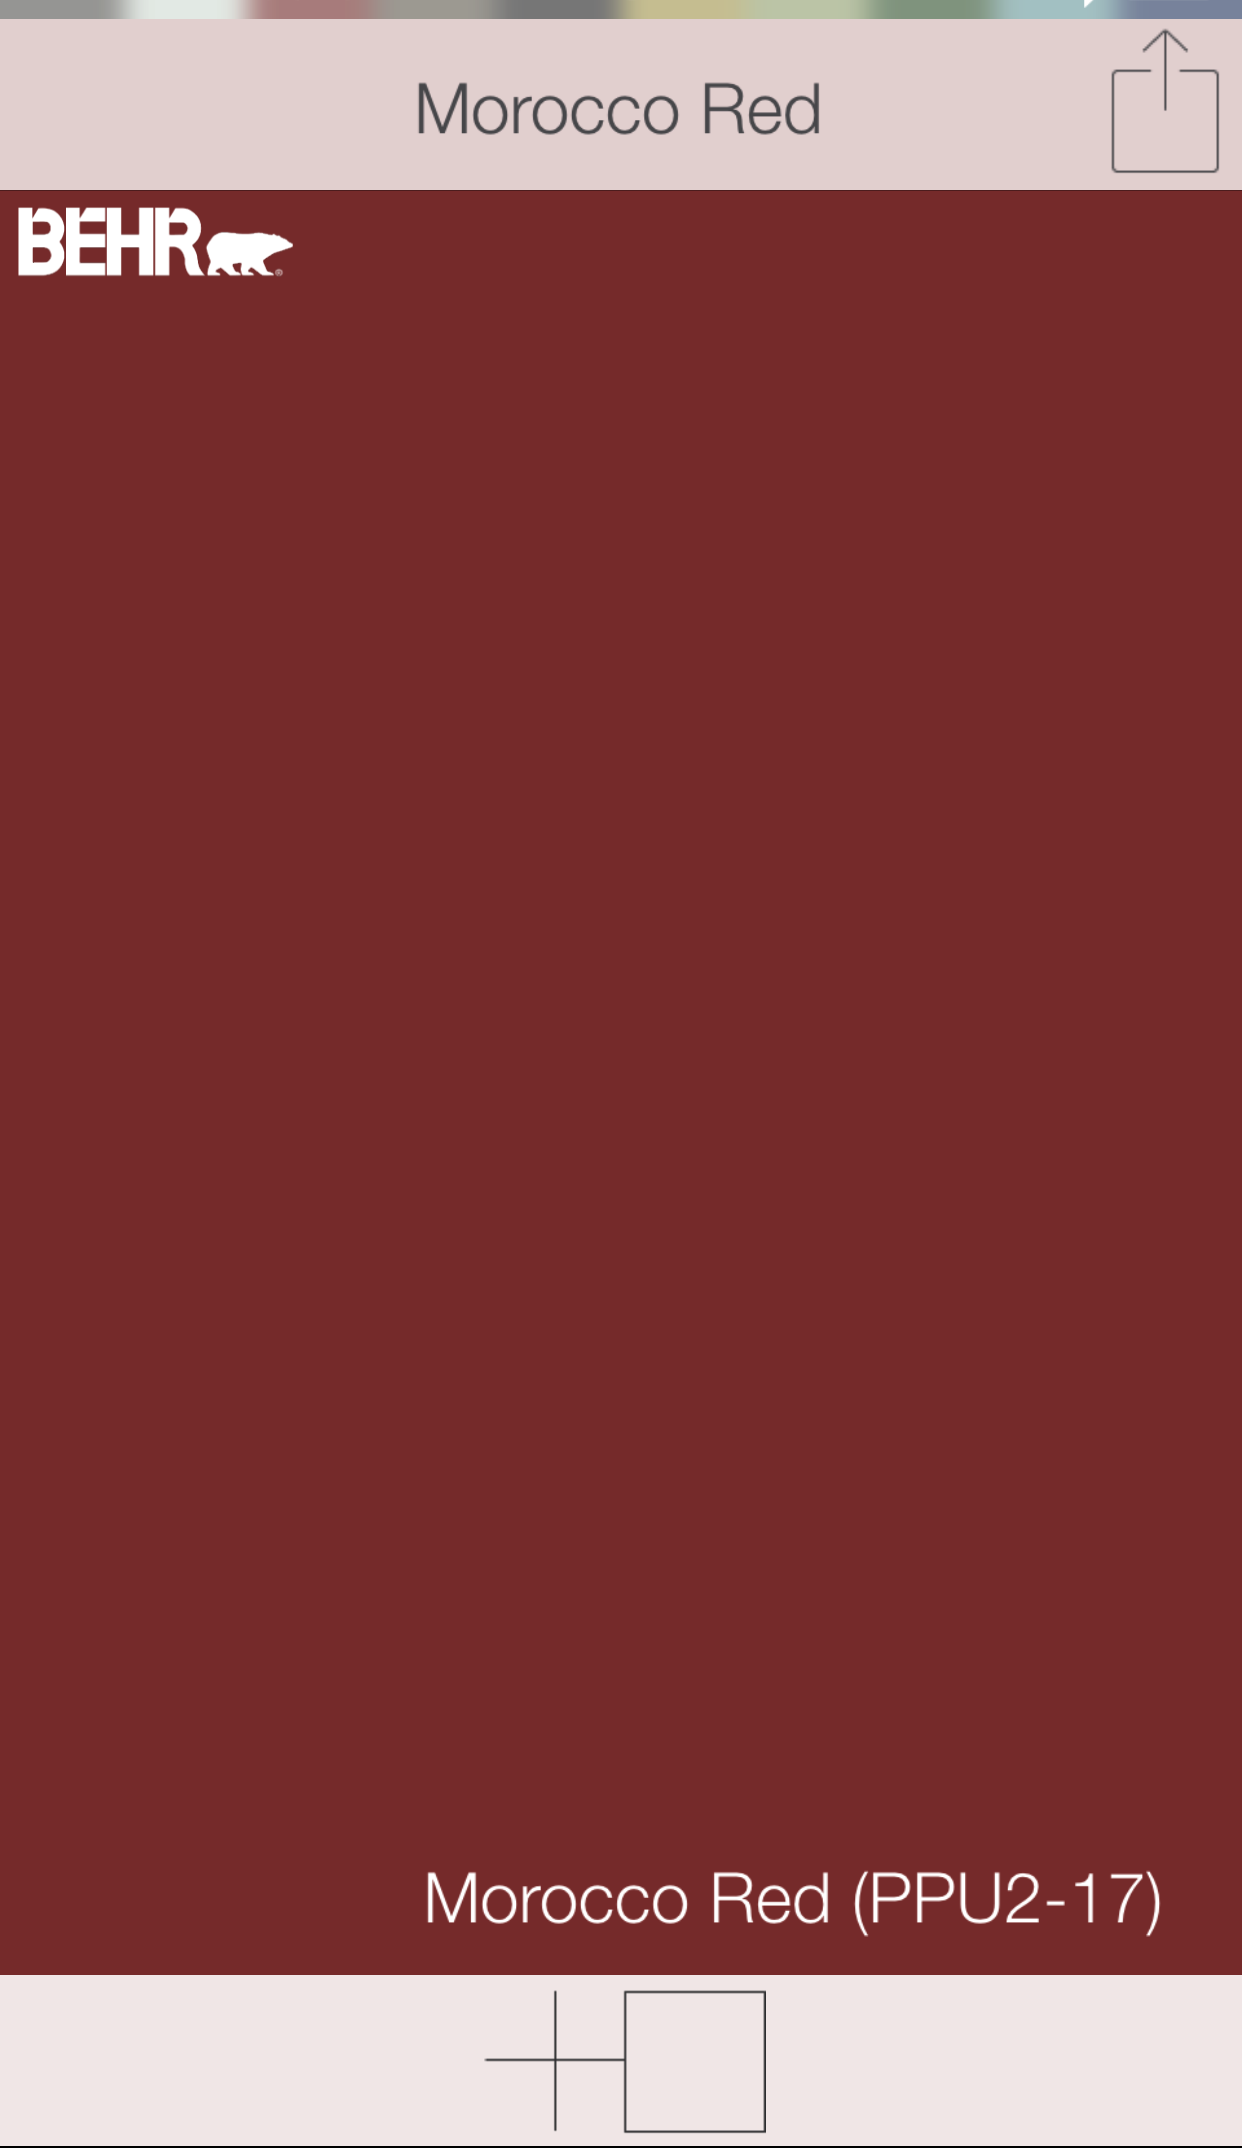 Red Front Door Colors Morocco Ppu2 17 Behr Paints Swatchdeck Use The Search Function In To Access Entire Collection Of